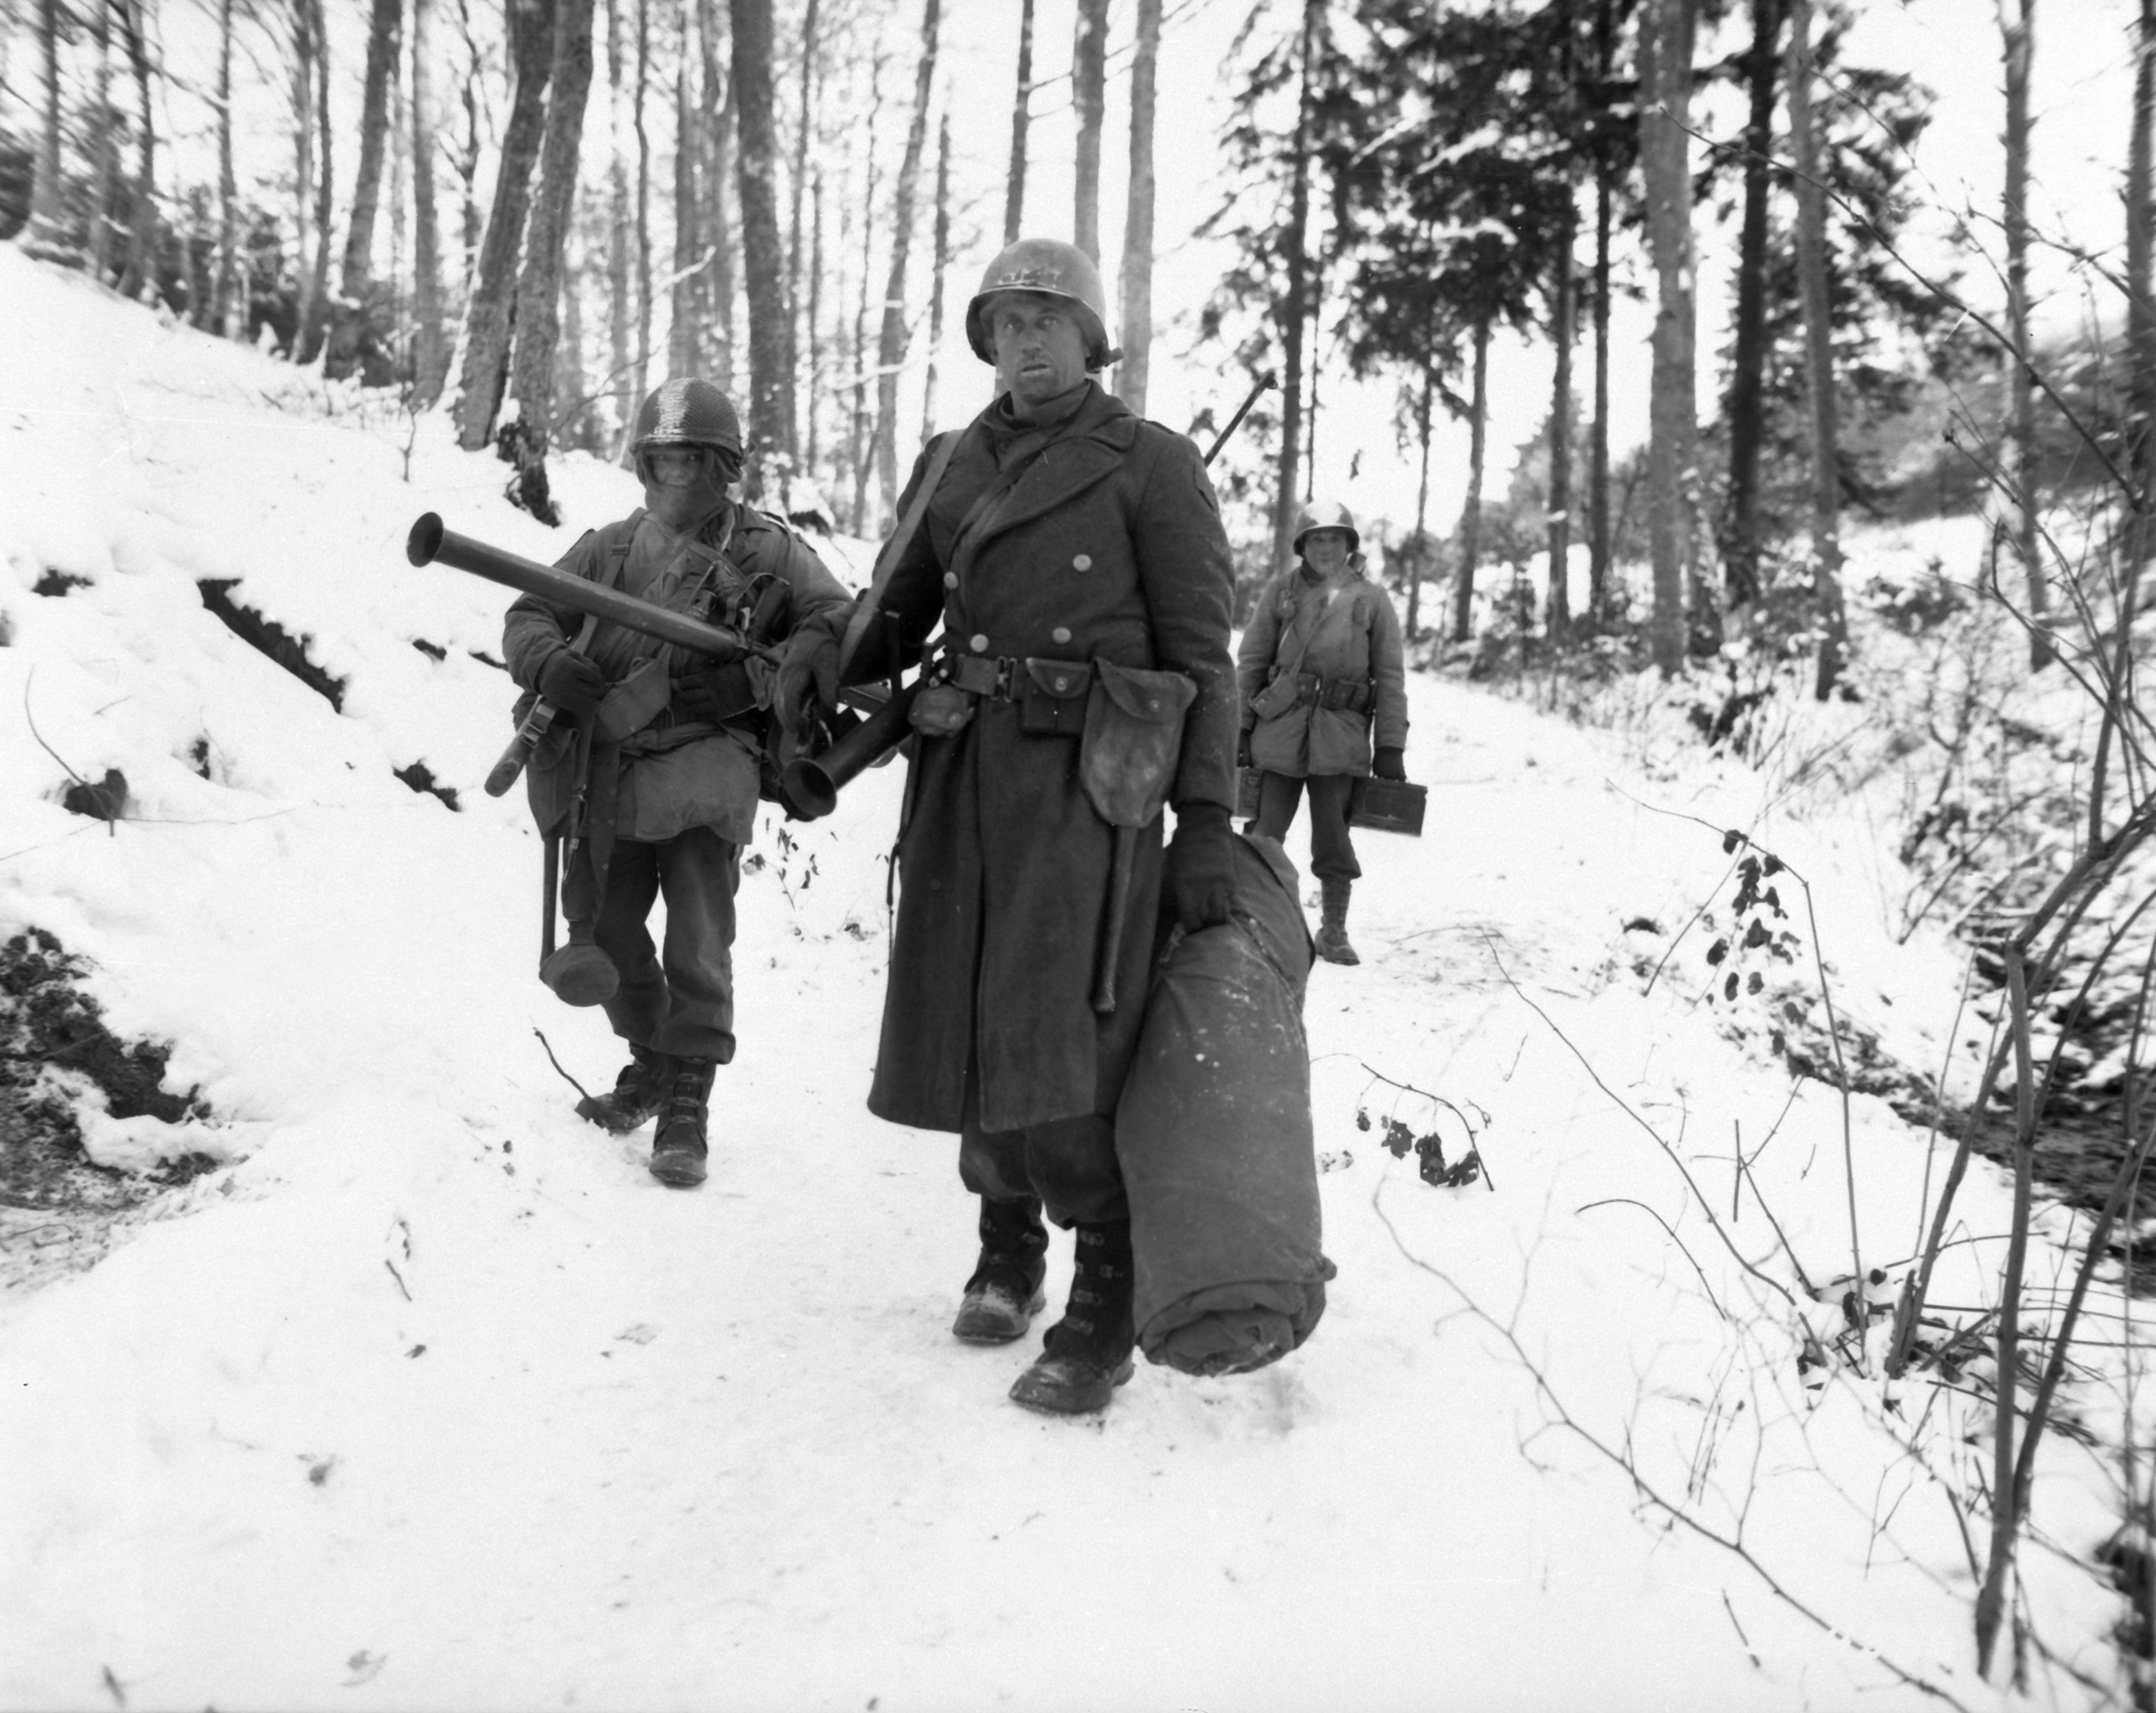 Caught by surprise and forced to fright in freezing conditions, American troops suffered high casualties. Image obtained from the U.S. Army website.